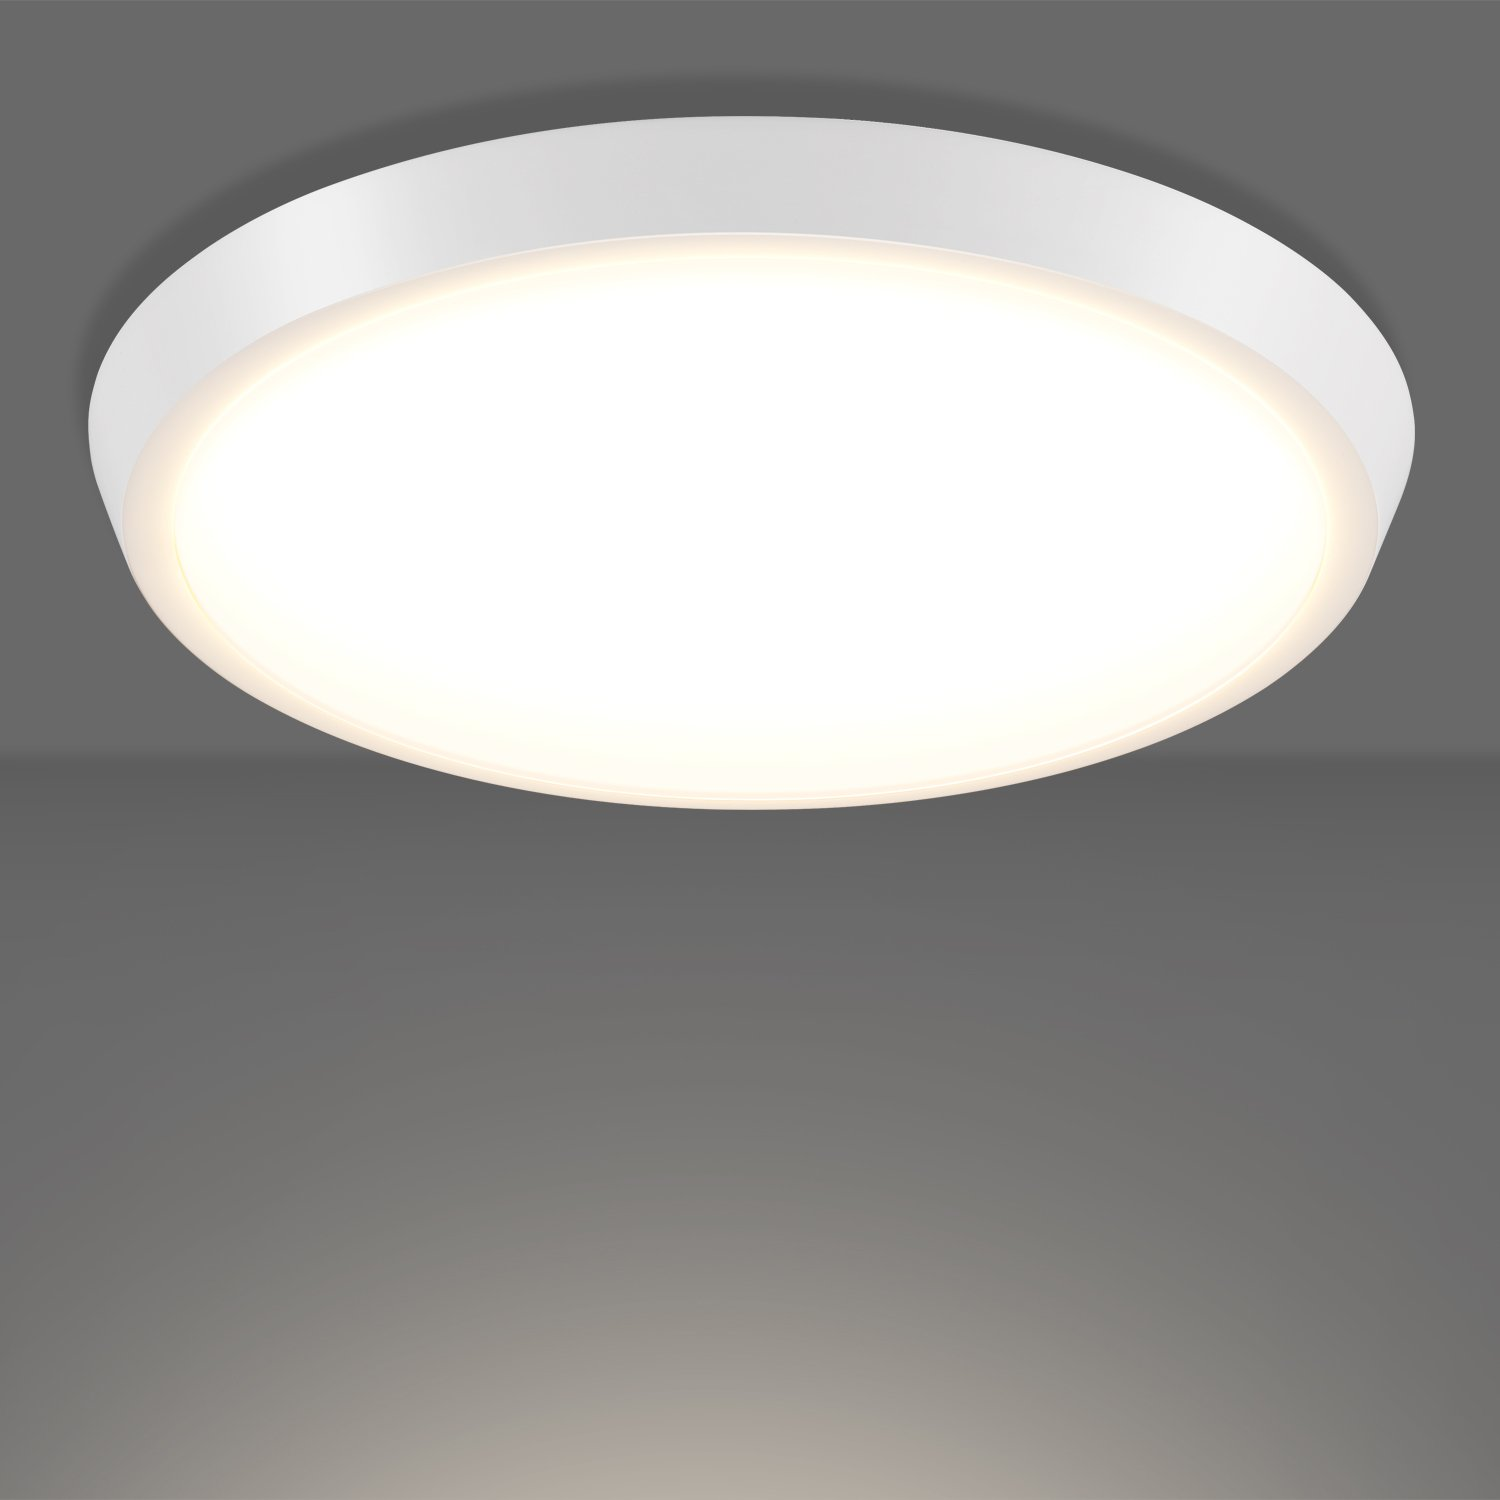 GetInLight 7 Inch Flush Mount LED Ceiling Light with ETL Listed, Soft White 3000K, Matte White Finish, IN-0302-2-WH - - Amazon.com